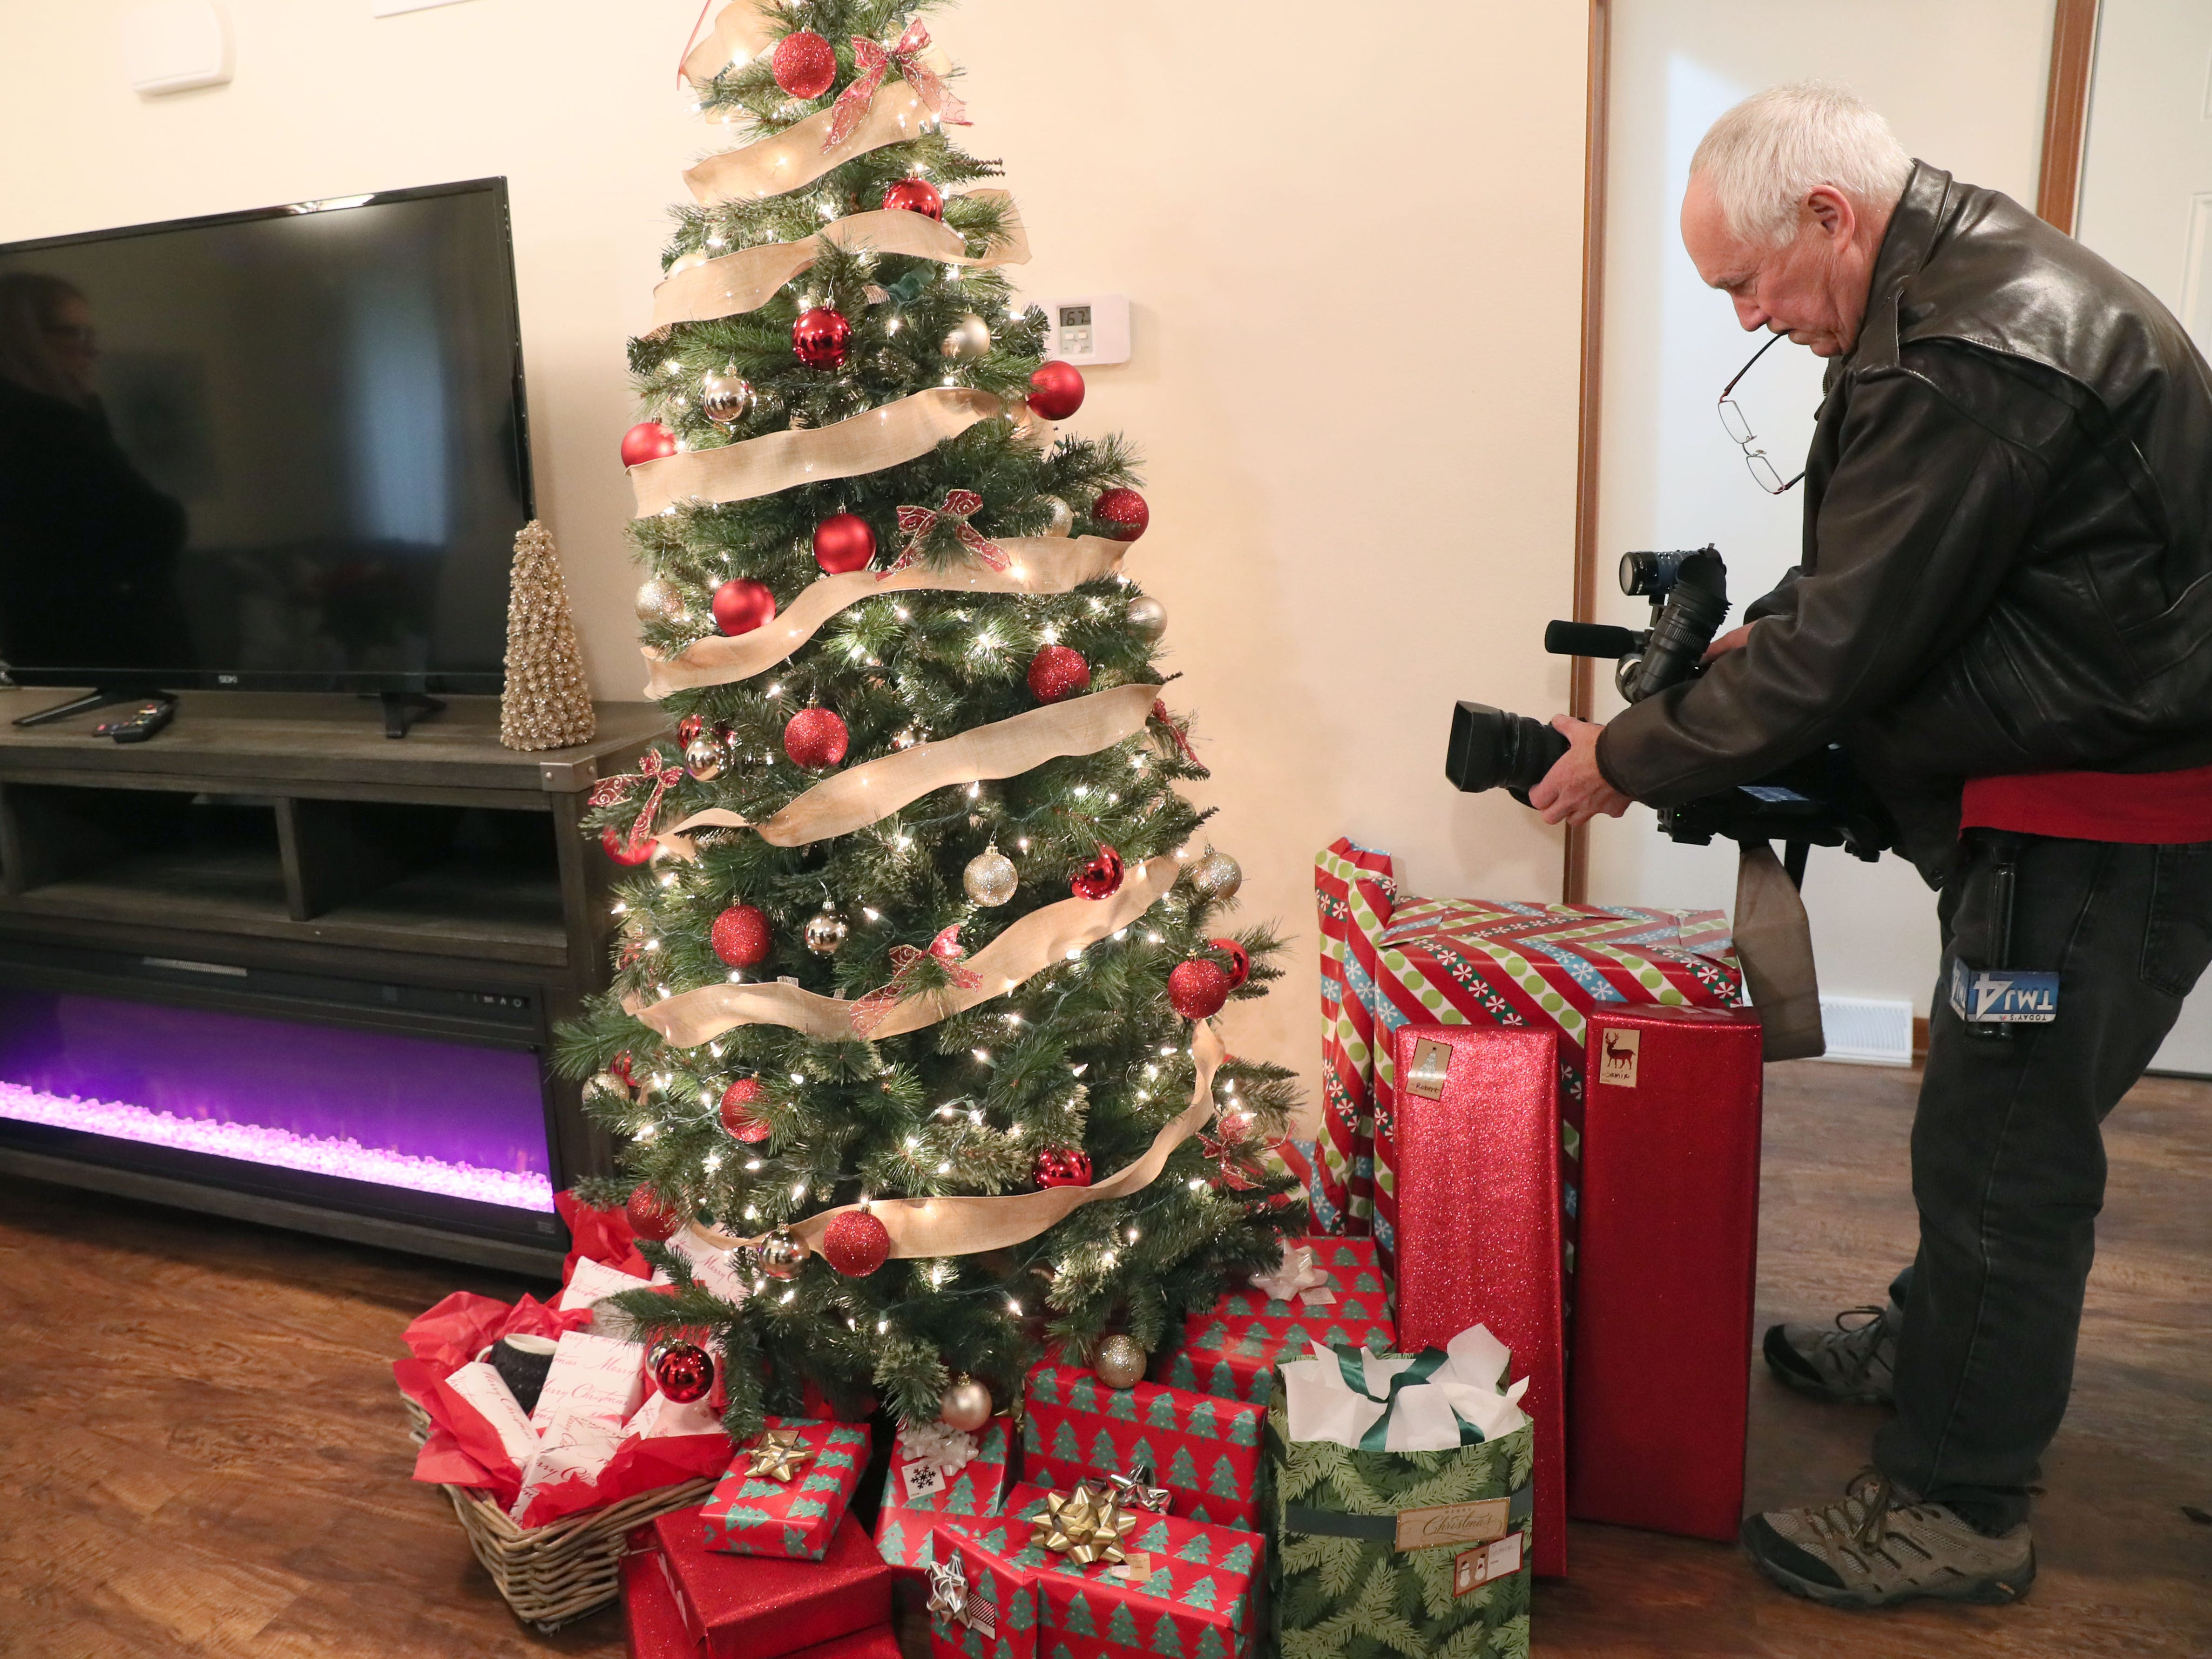 A news photographer takes images of the Christmas tree.